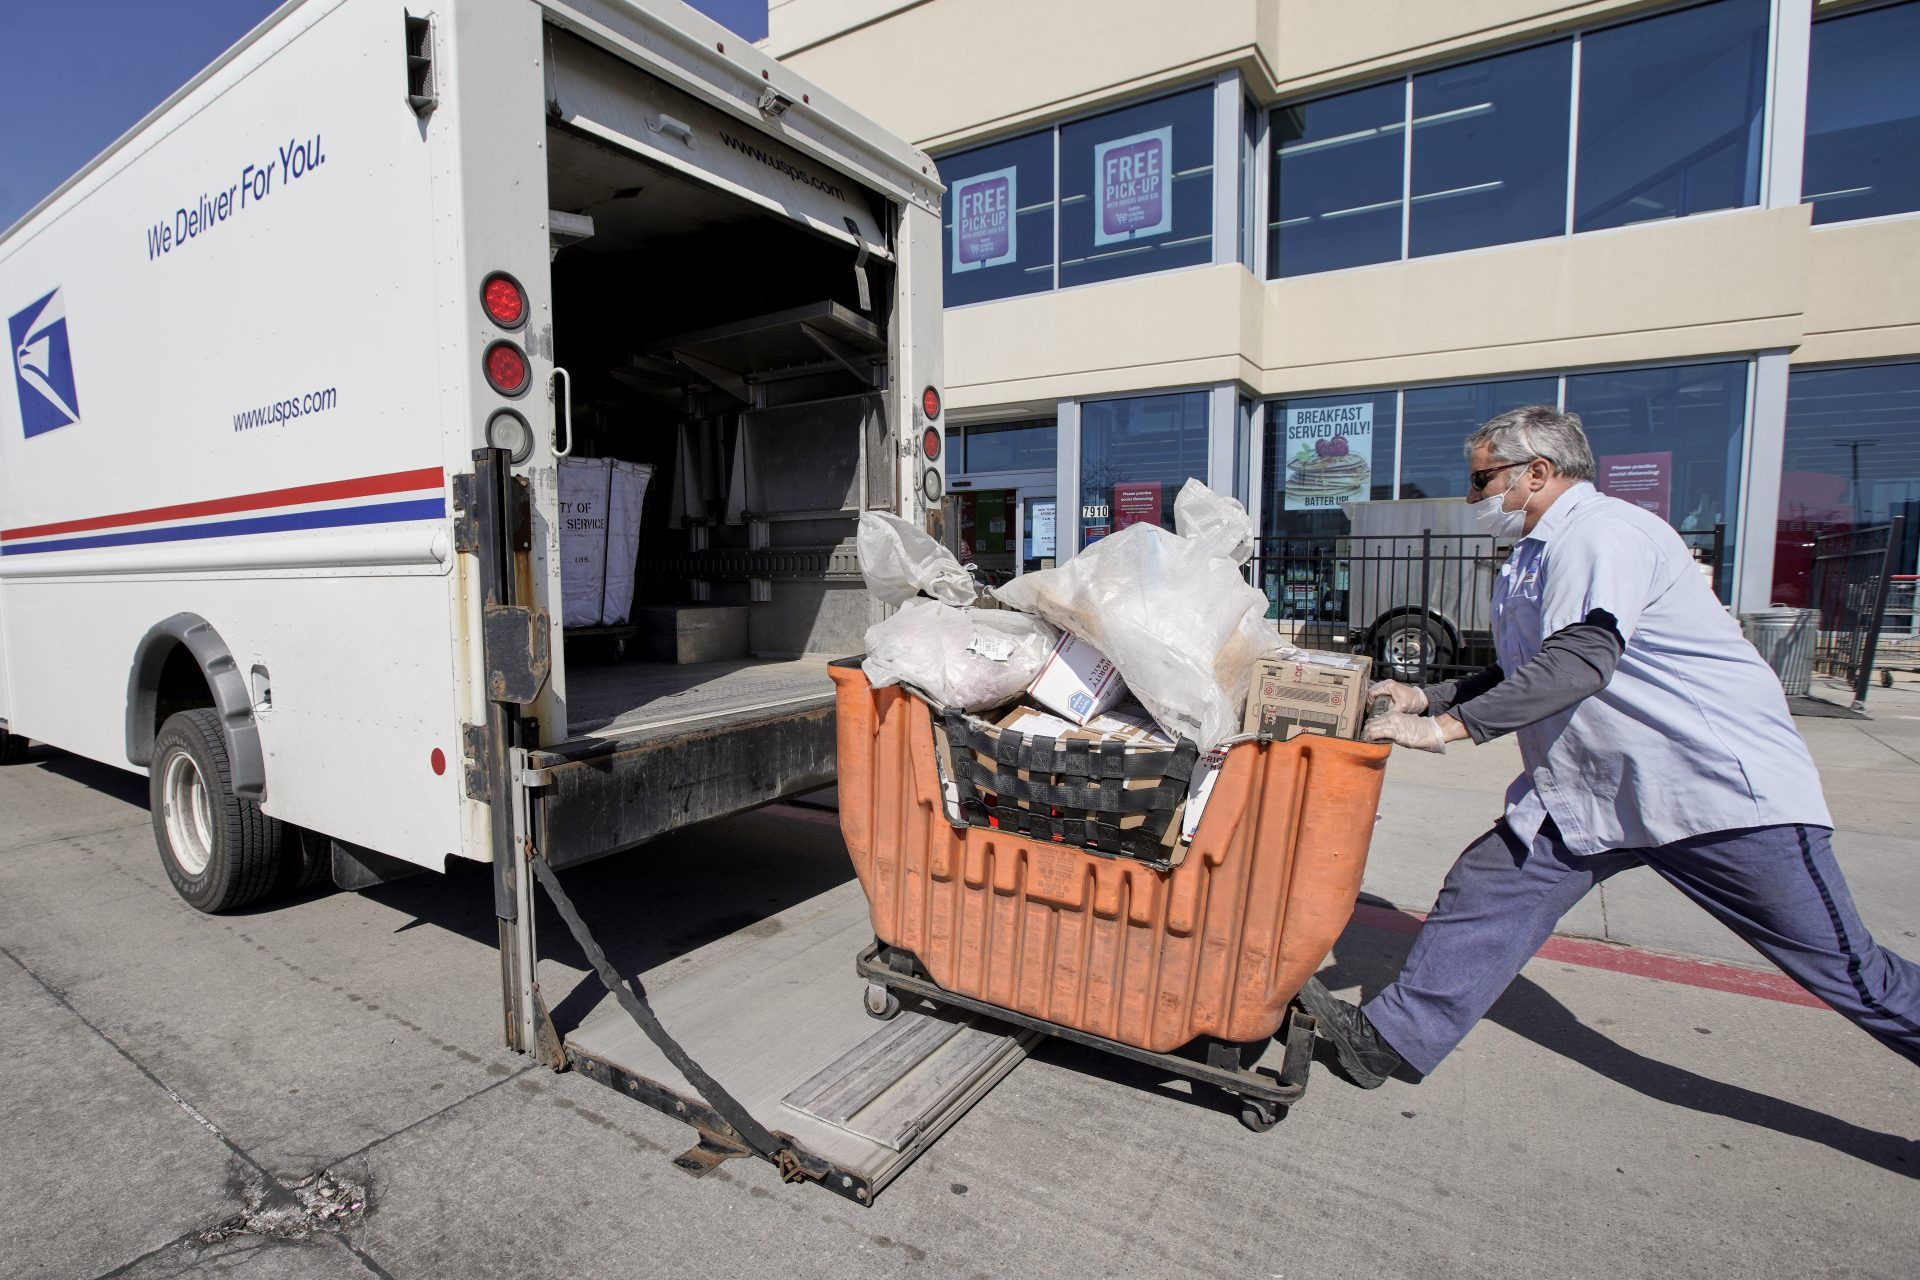 A postal worker wears protective gear against the coronavirus as he collects articles of mail outside a supermarket in Omaha, Neb., Friday, April 10, 2020.